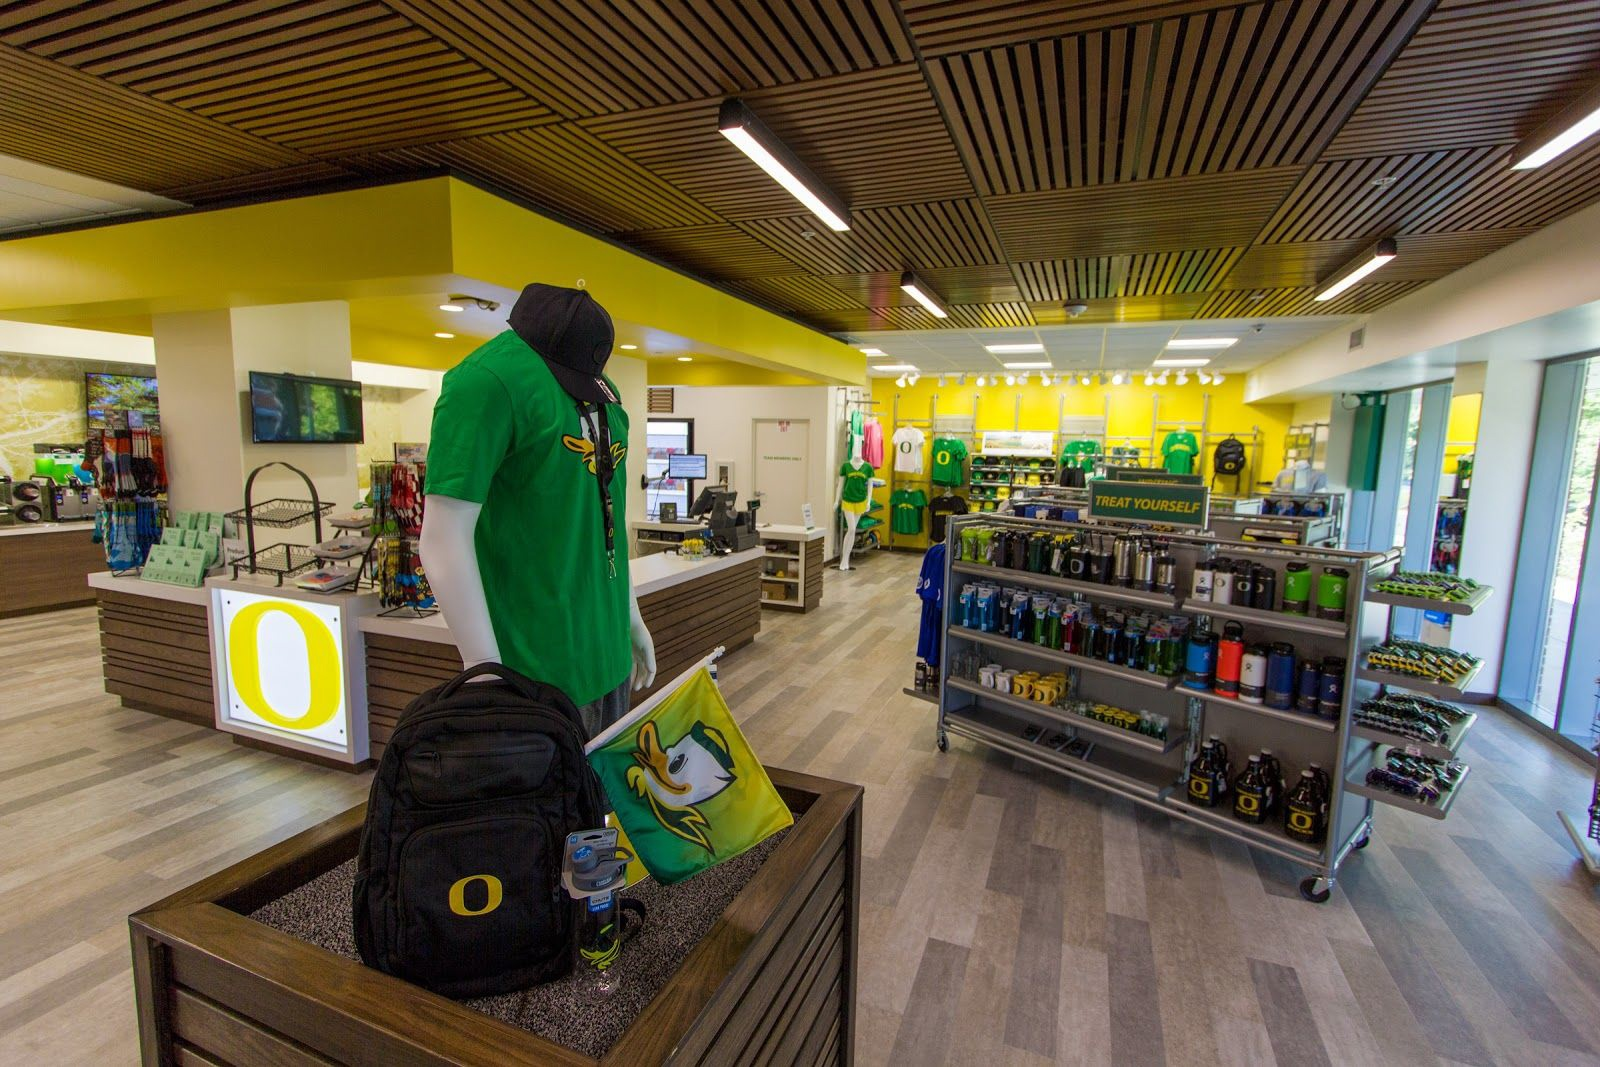 New Duck Store Joins the Flock in $95M Facility